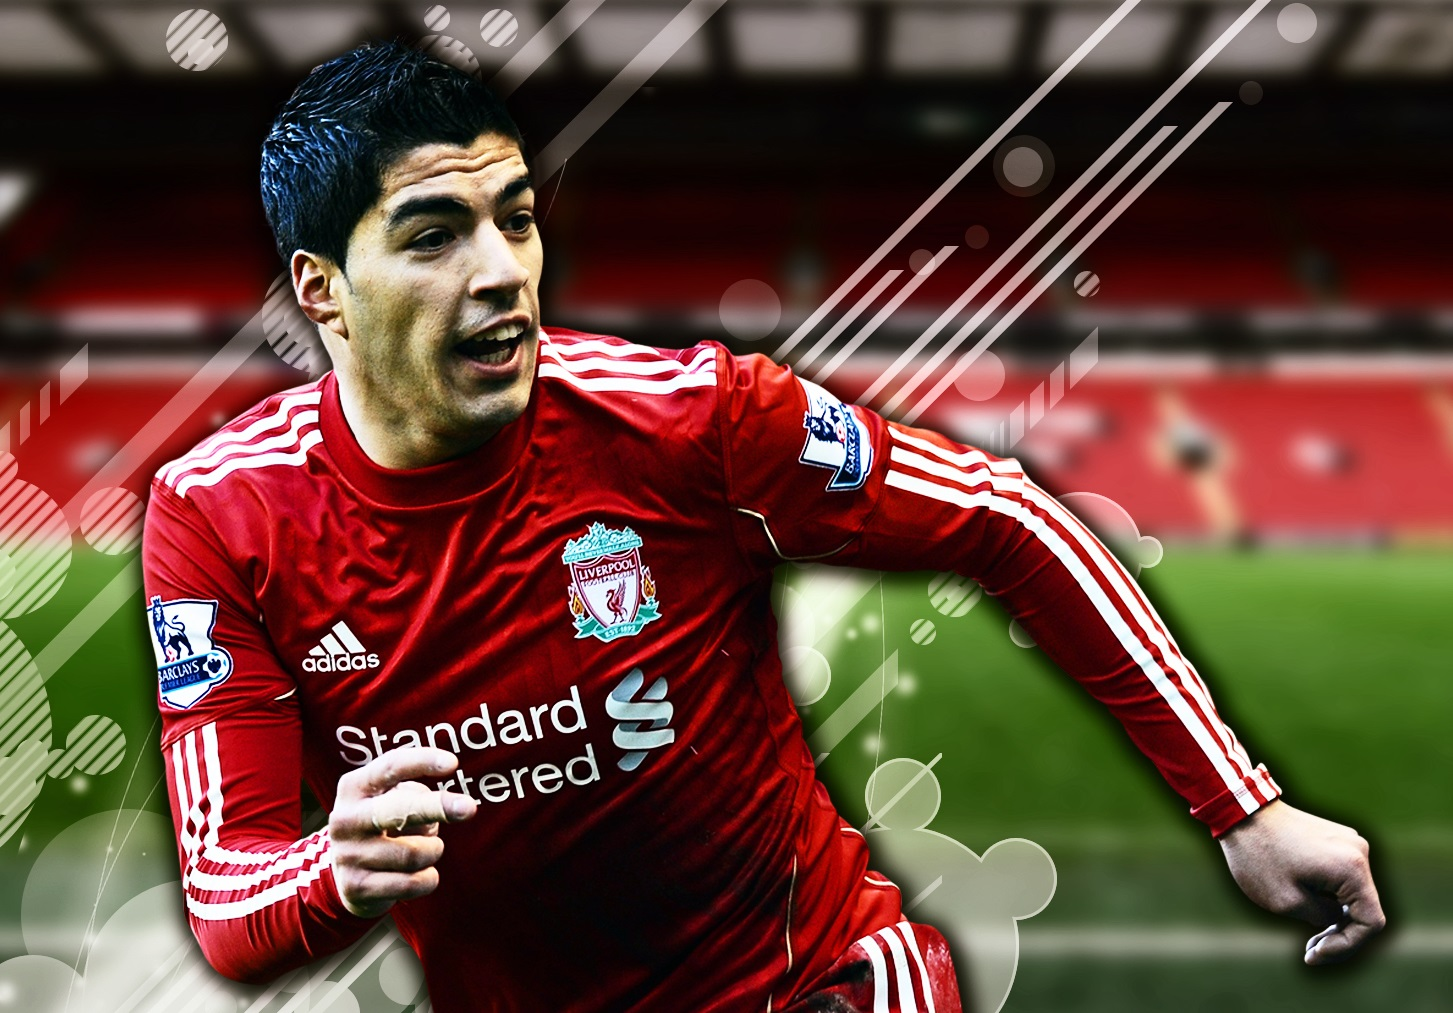 Luis Suarez Wallpaper High Quality Idiot Dollar 1453x1013